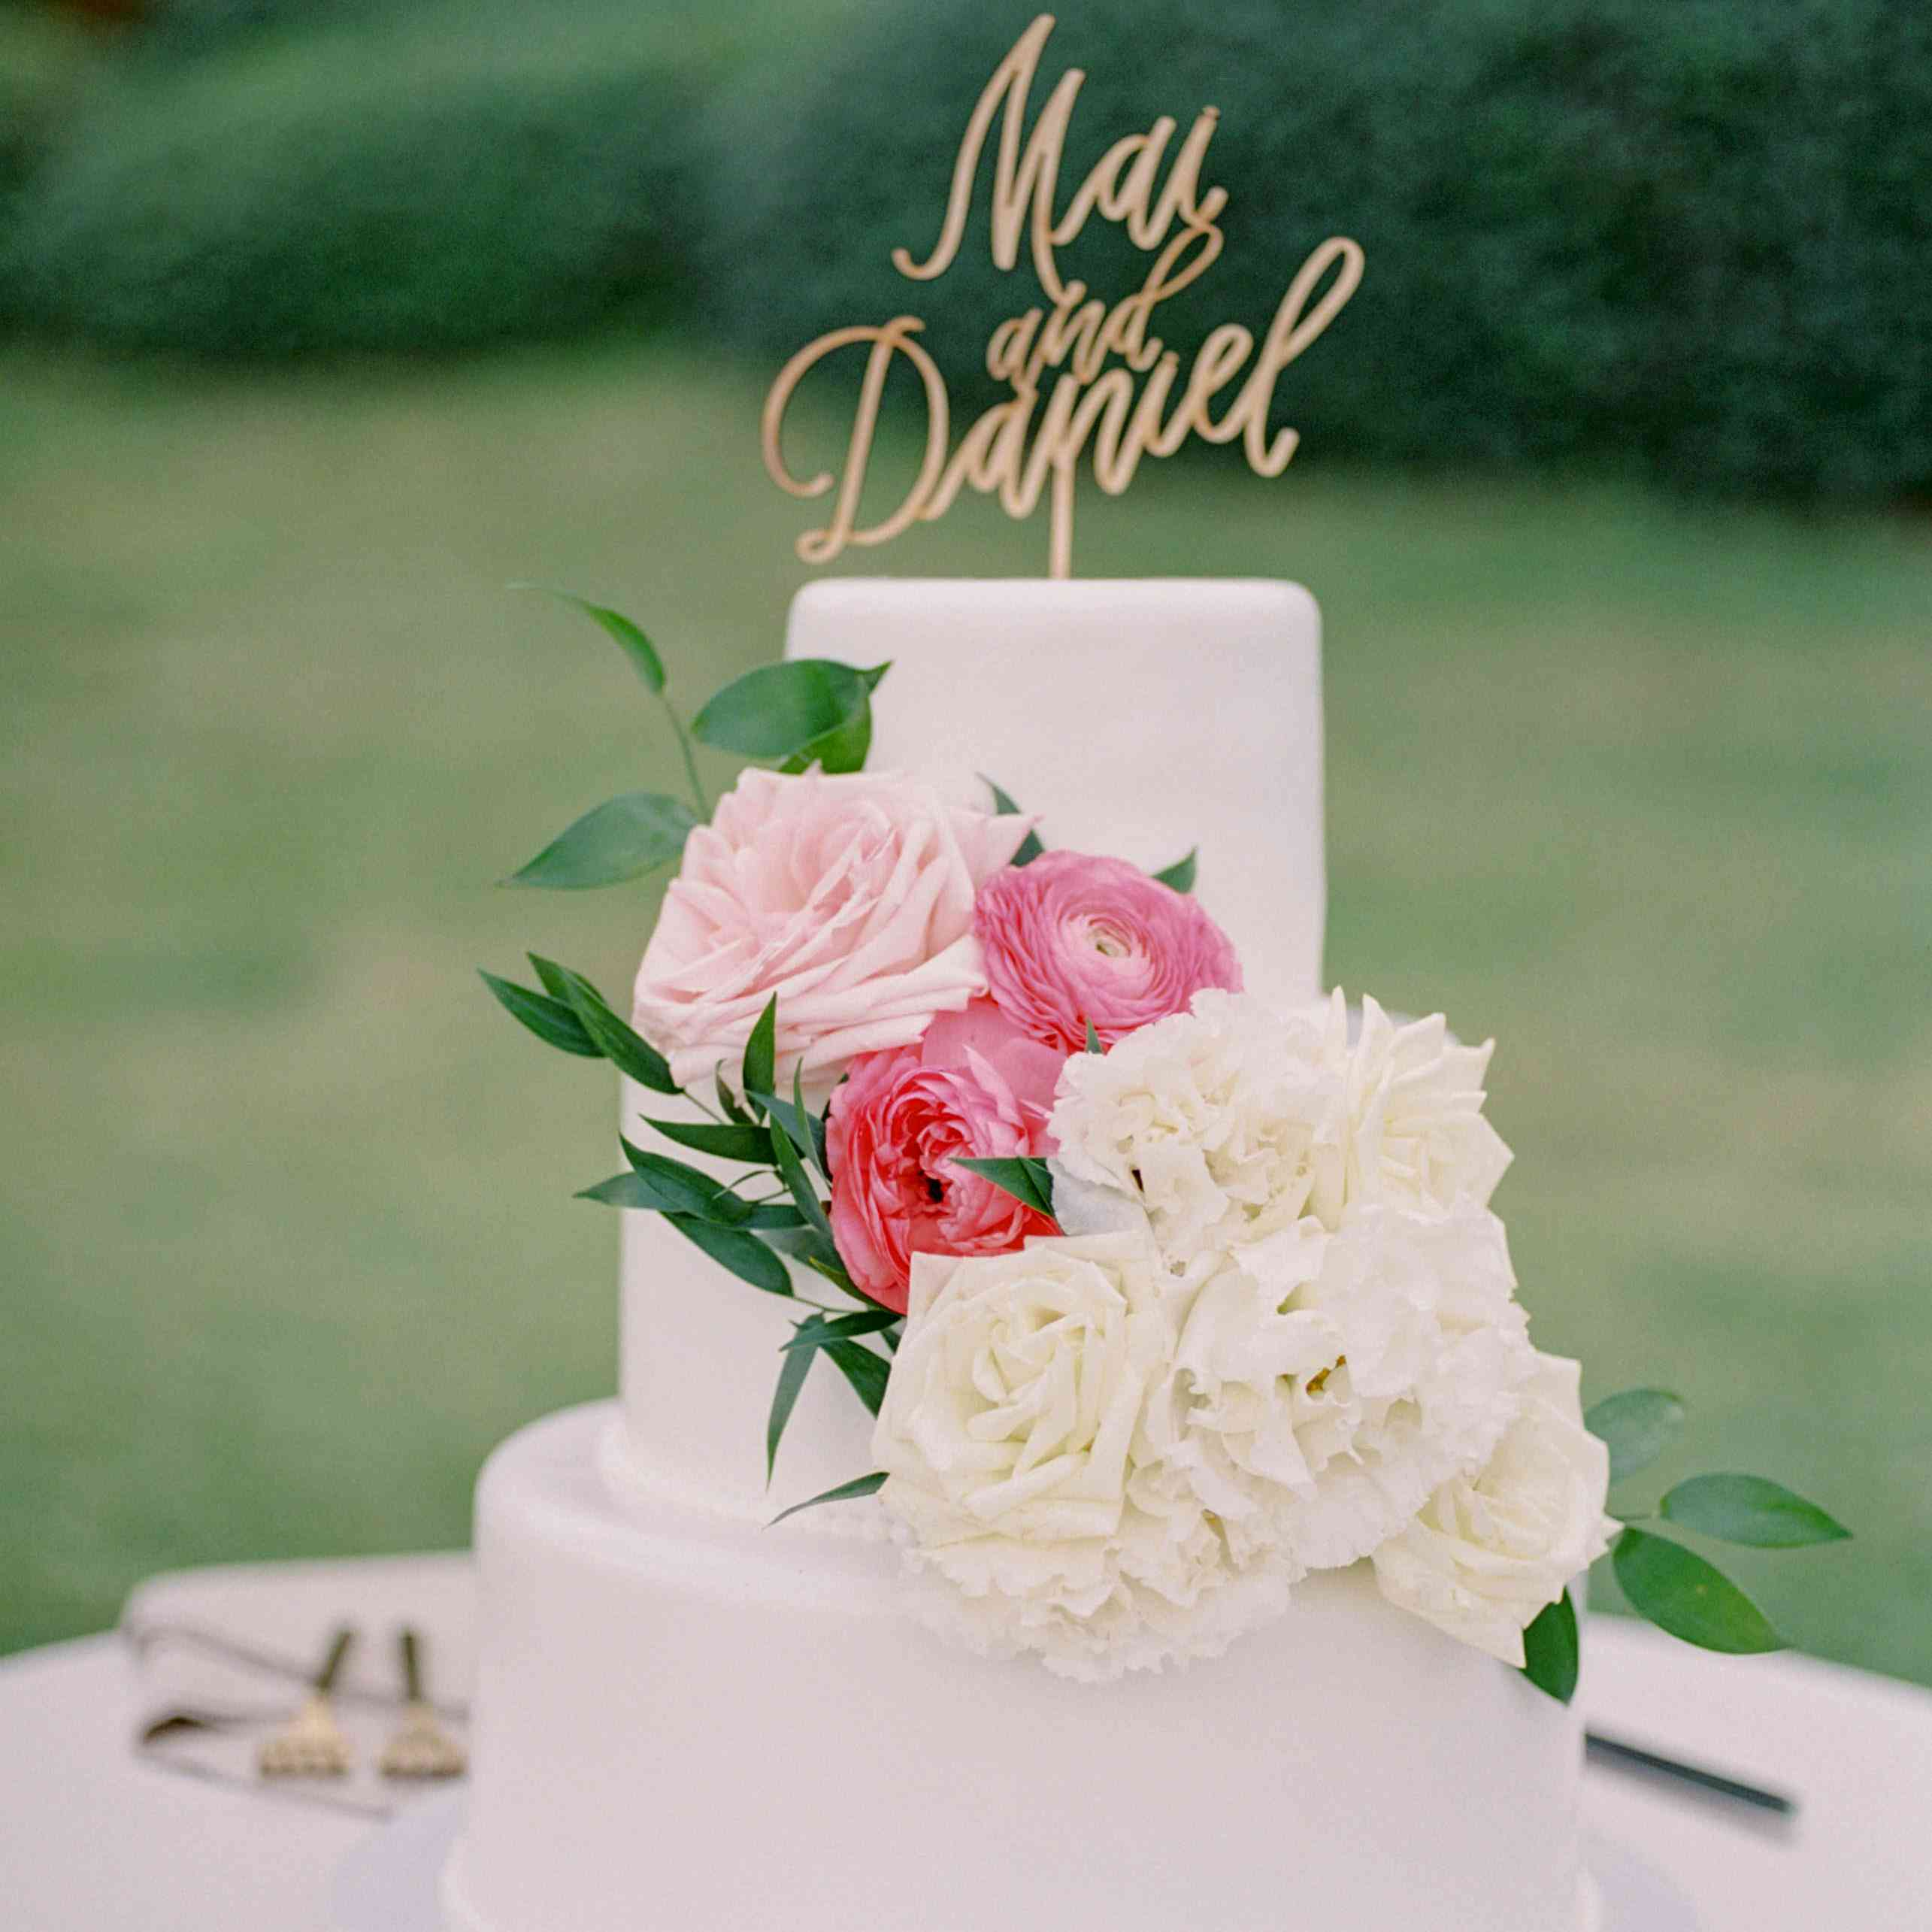 Wedding Cakes With Flowers: 85 Of The Prettiest Floral Wedding Cakes